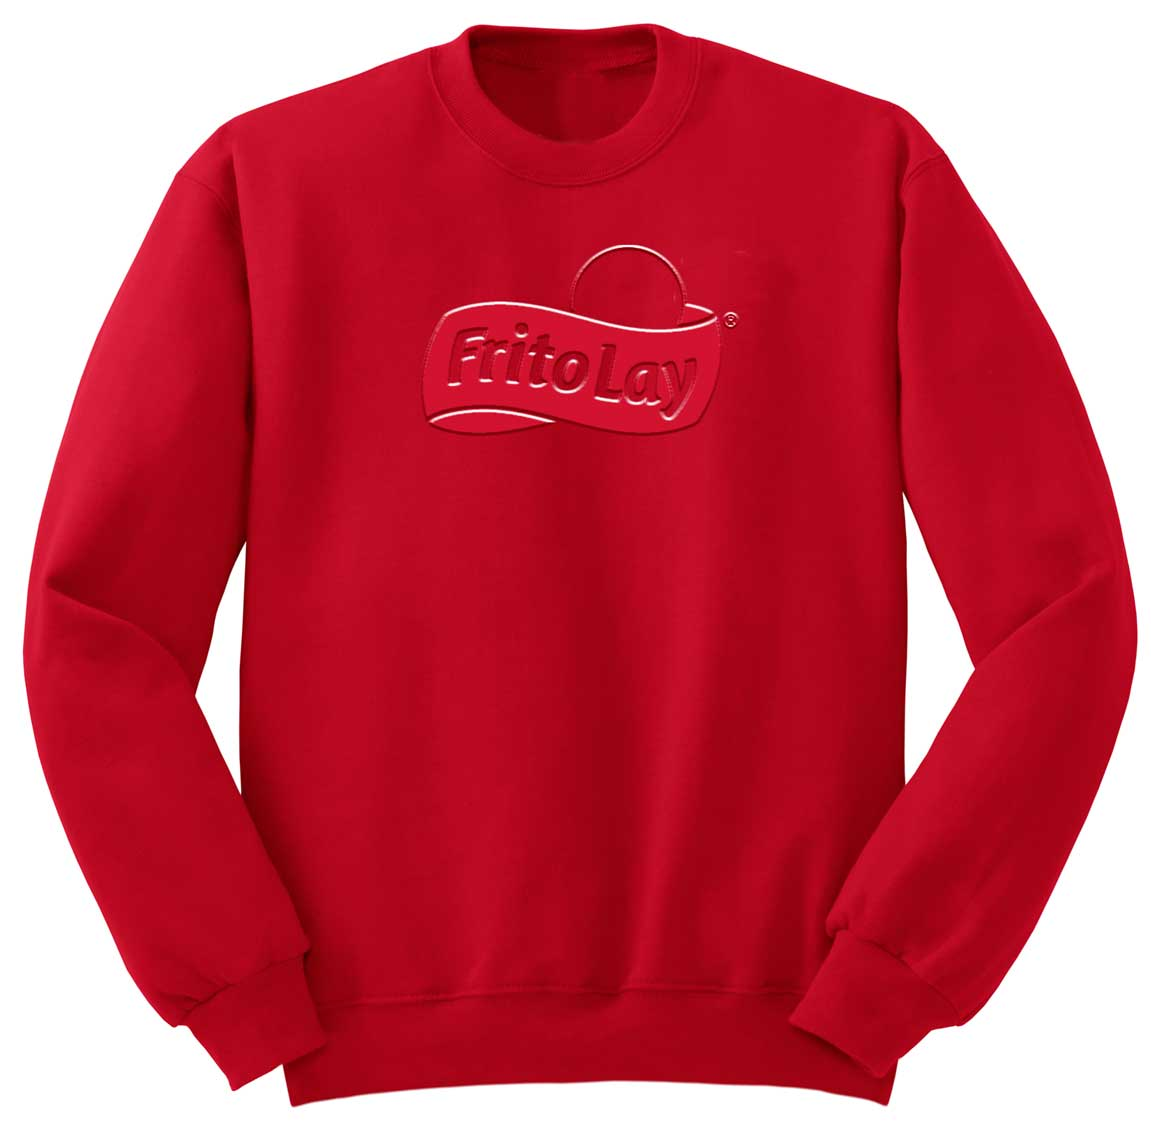 Comfort Zone Sweatshirt - Fritolay